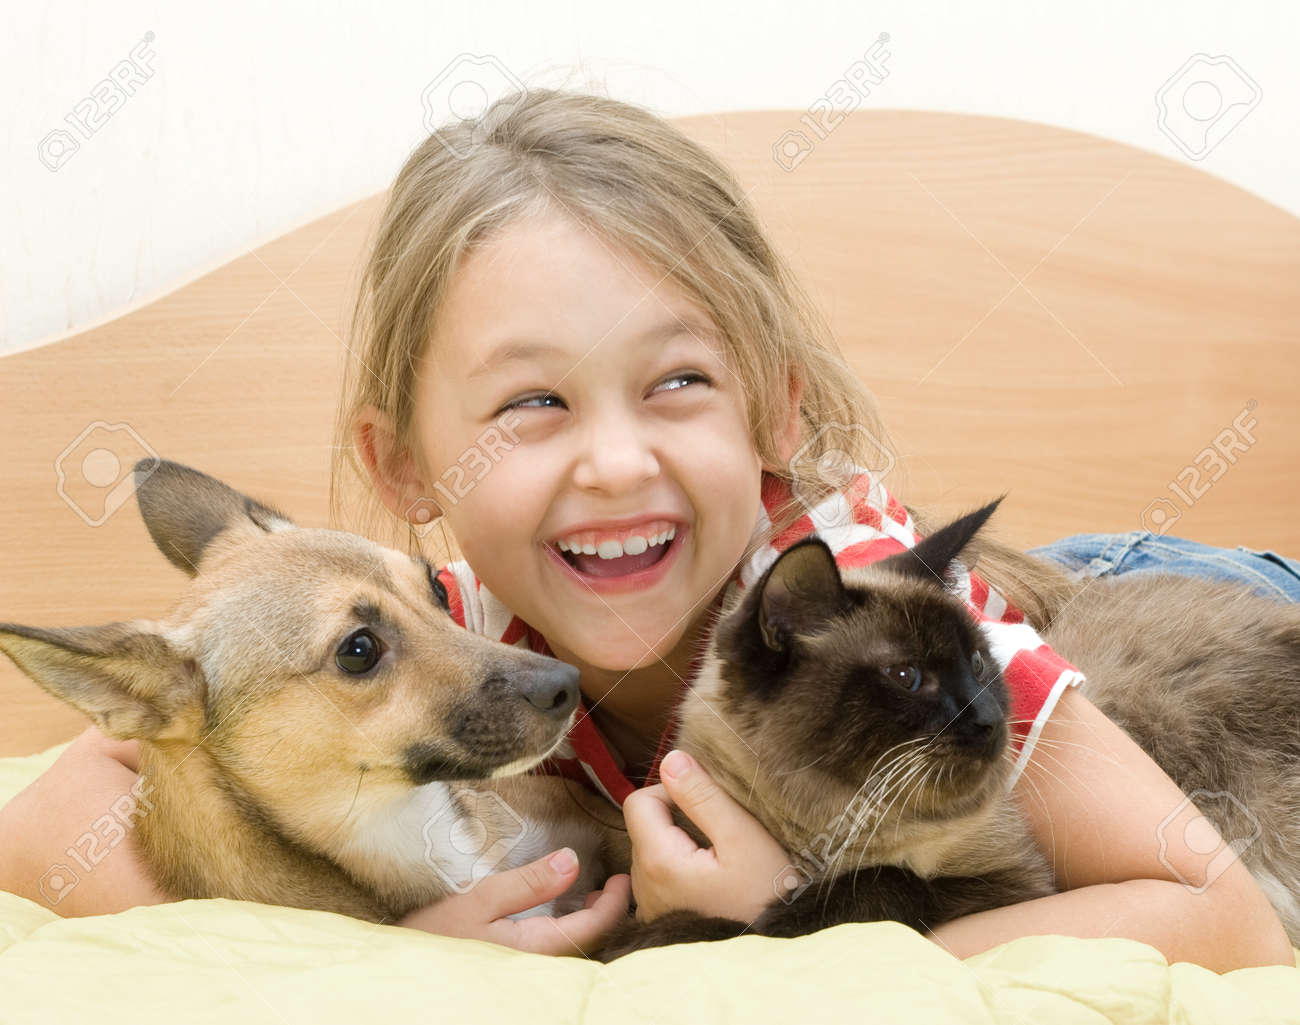 little girl with a dog and a cat on a bed of yellow color - 22392210